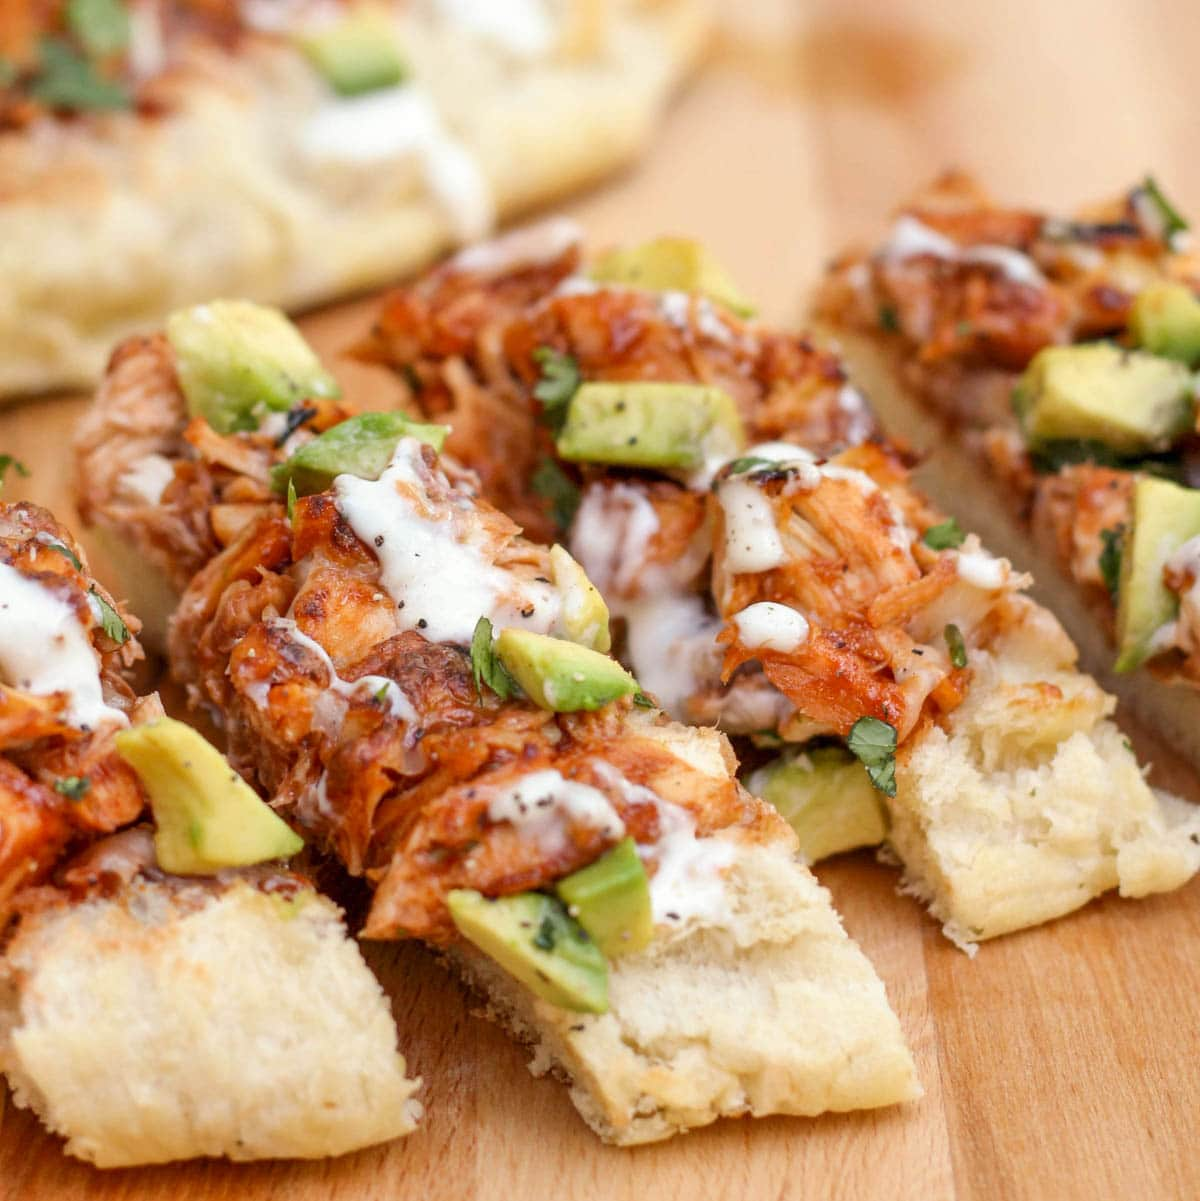 Barbecue chicken french bread sliced on a cutting board